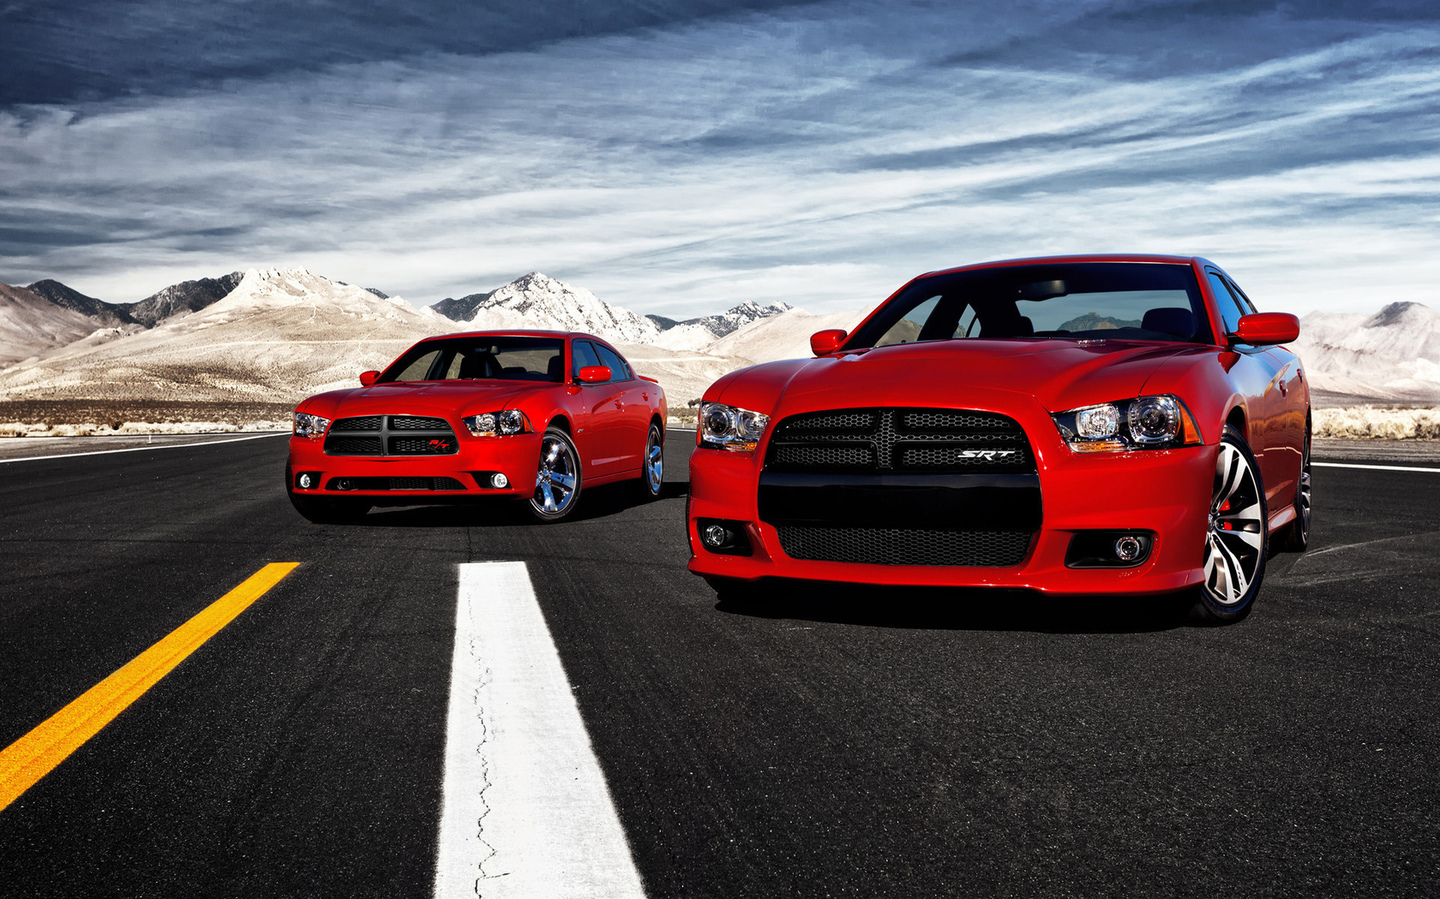 додж, dodge, charger, авто обои, rt, авто фото, srt8, dodge, charger, auto wallpapers, cars, тачки